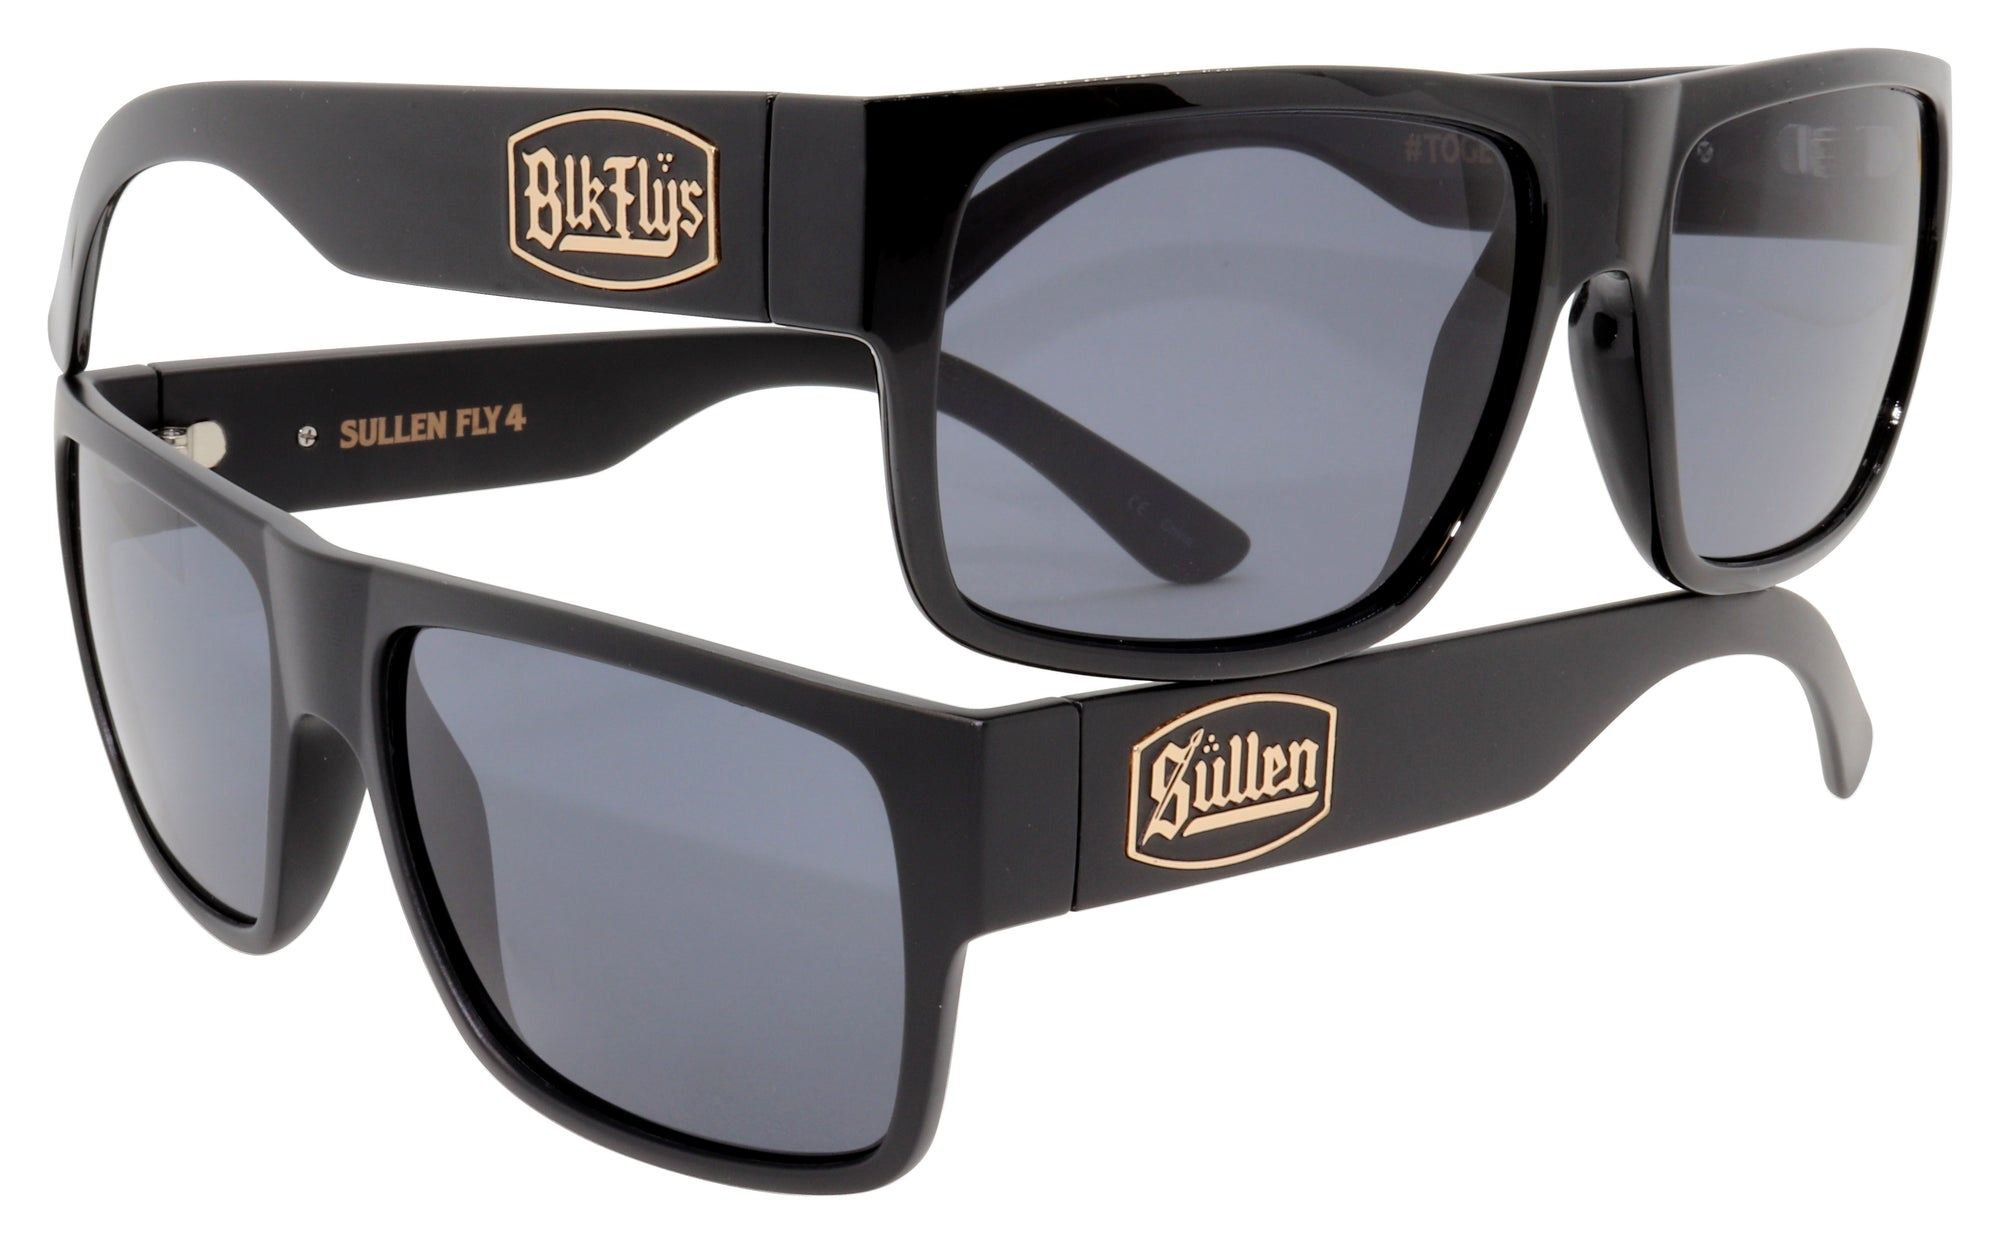 Sullen Fly 4 Collab Sunglass